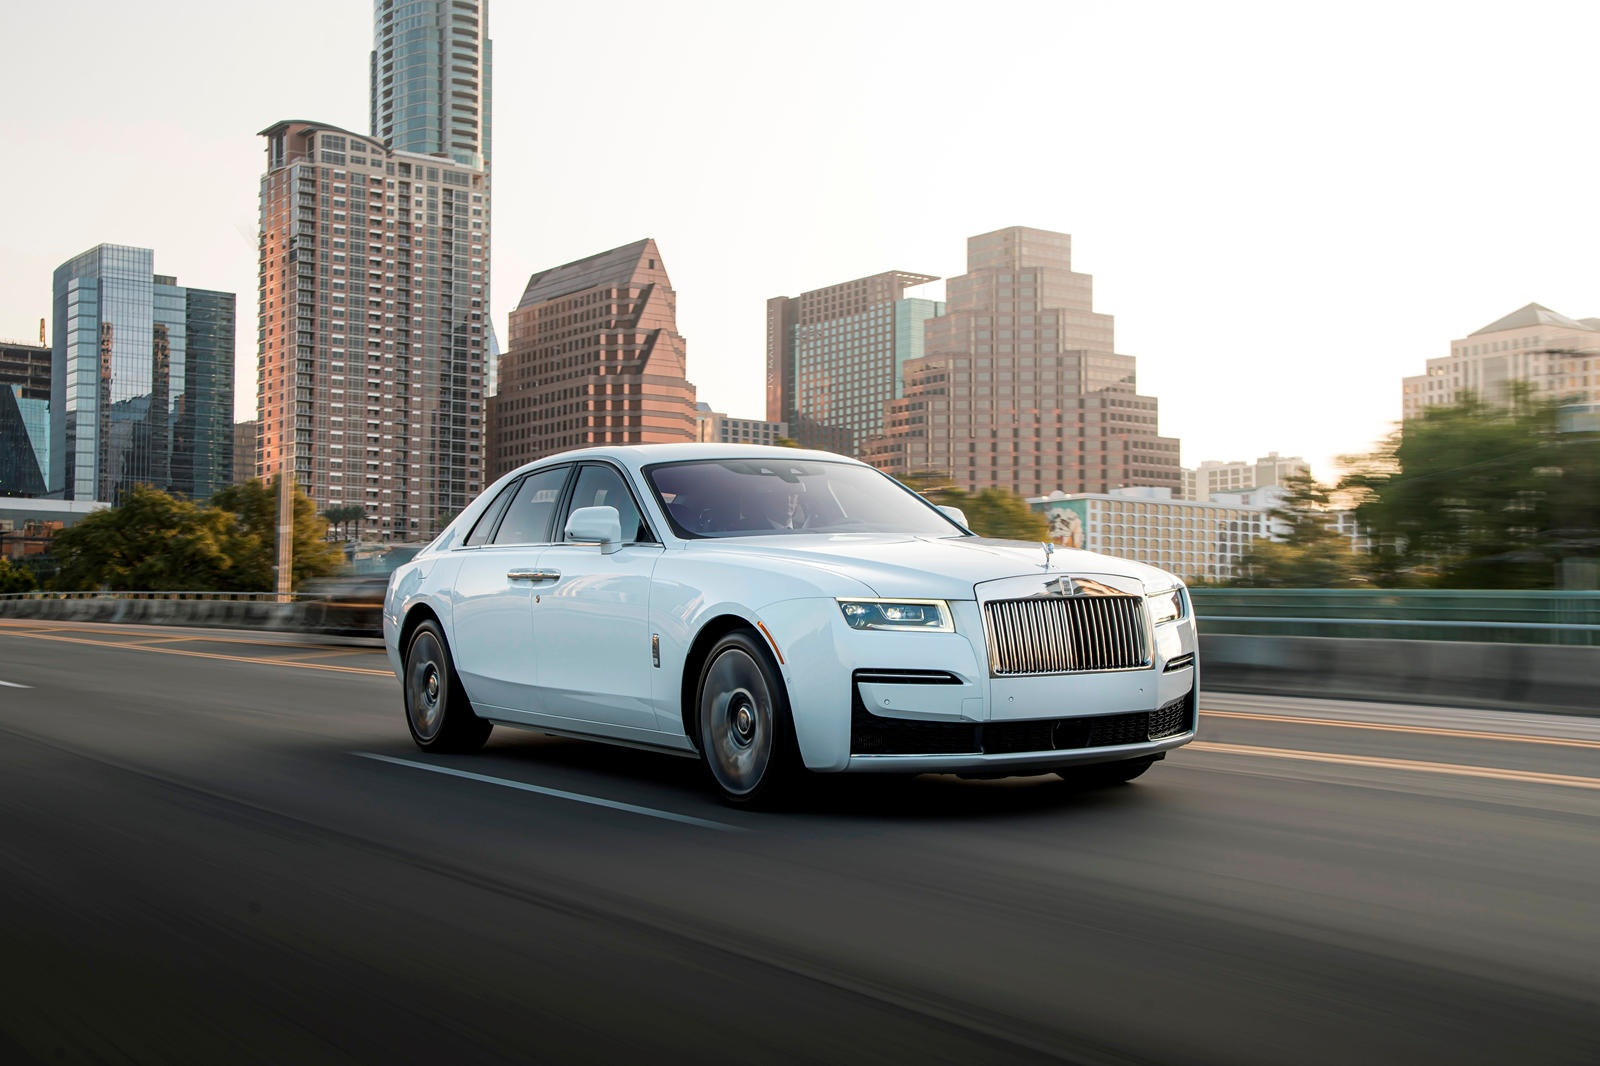 Danh gia Rolls-Royce Ghost 2021 anh 1